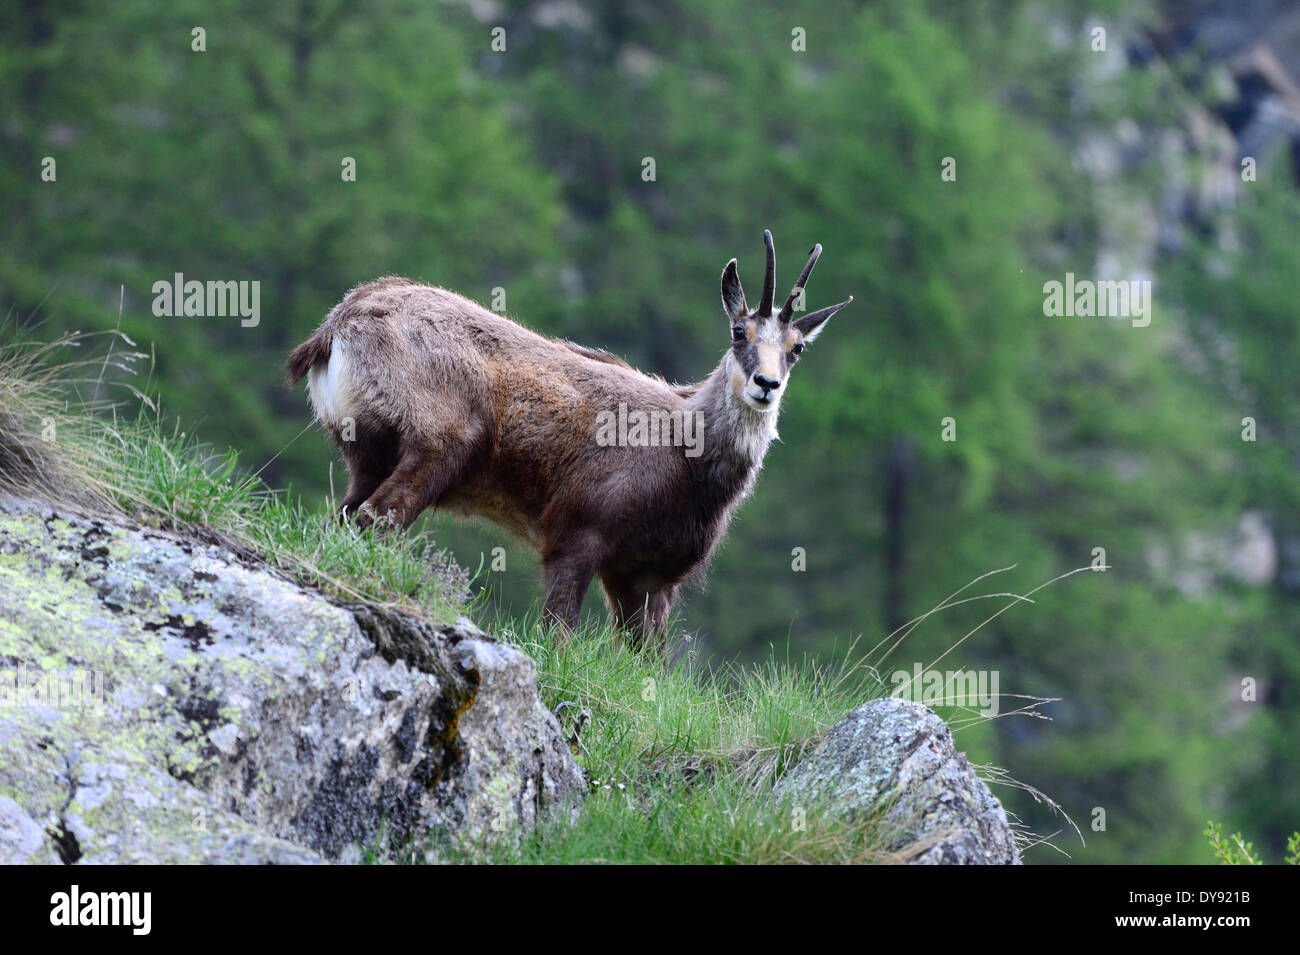 Chamois Mountain Goat Chamoises Rupicapra Fur Change Summer Game Wild Animals Alpine Animal Europe